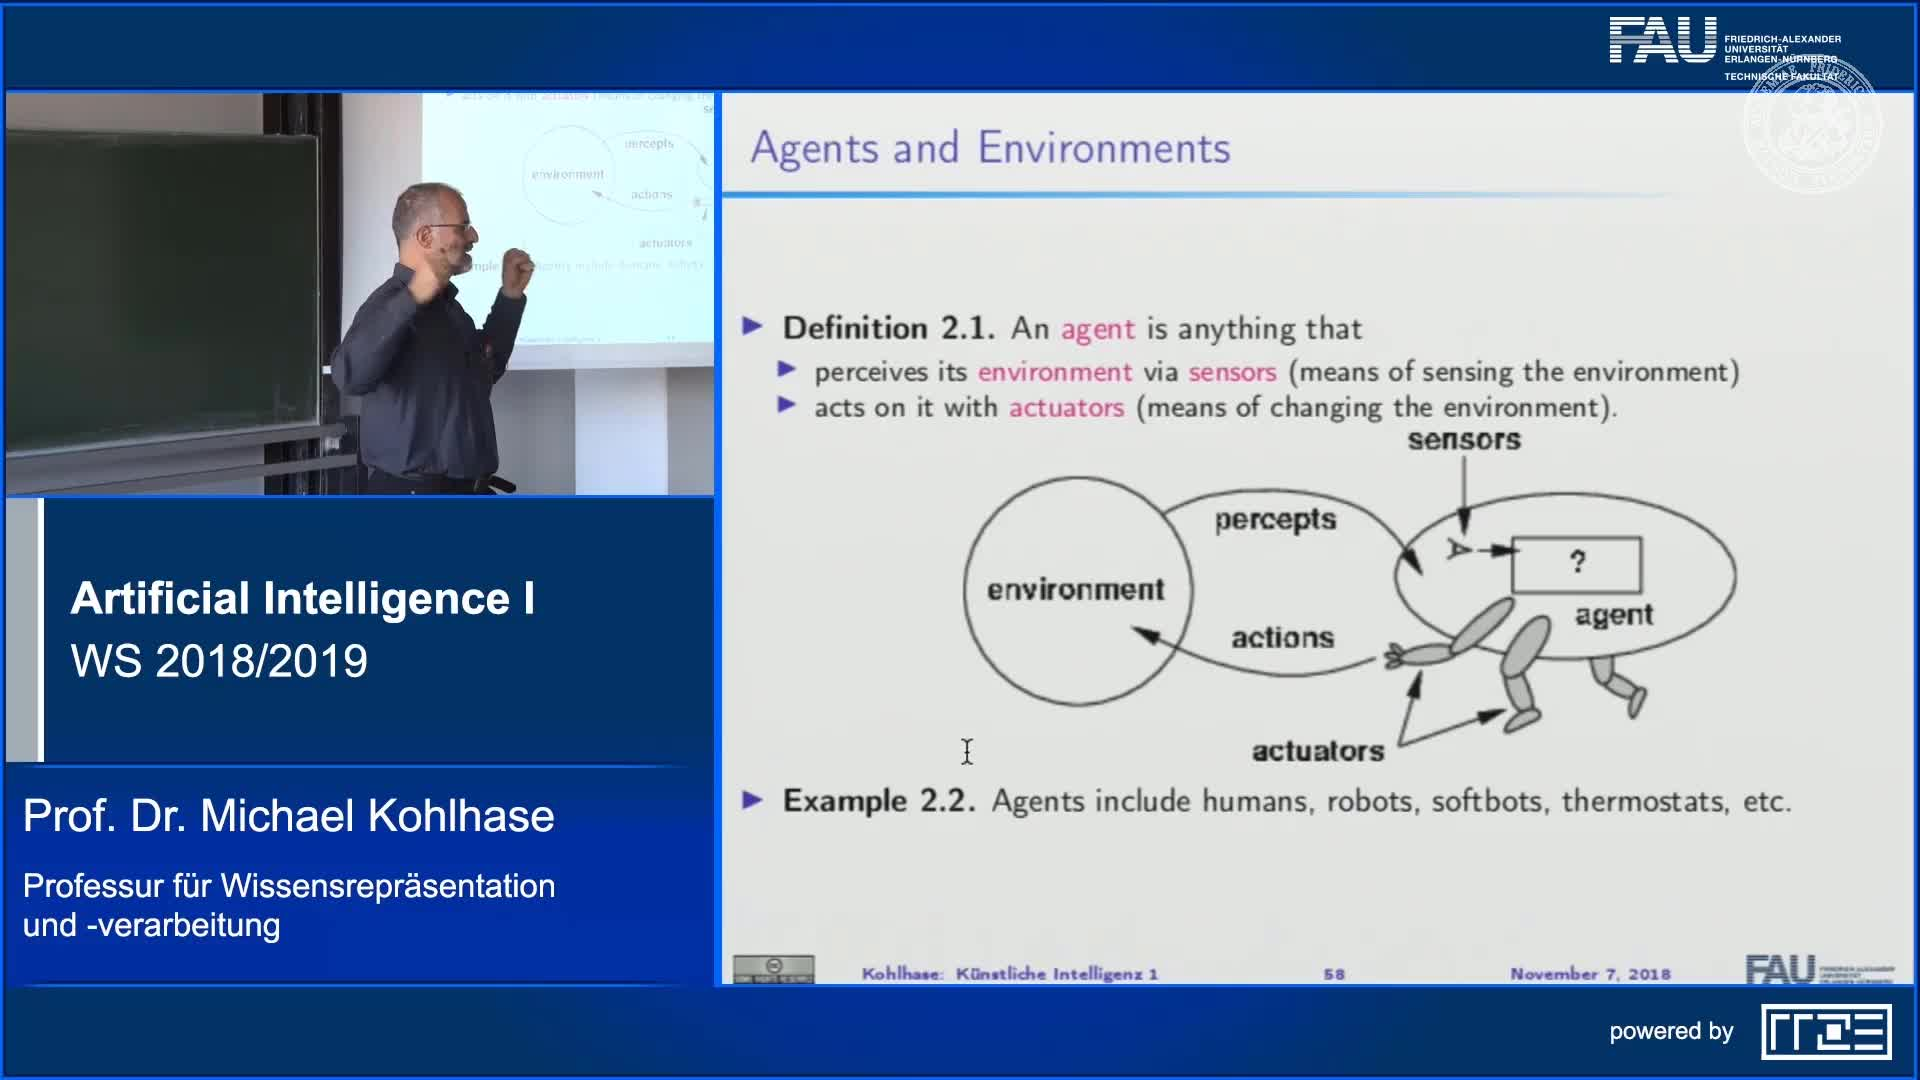 Recap Clip 6.2: Agents and Environments as a Framework for AI preview image